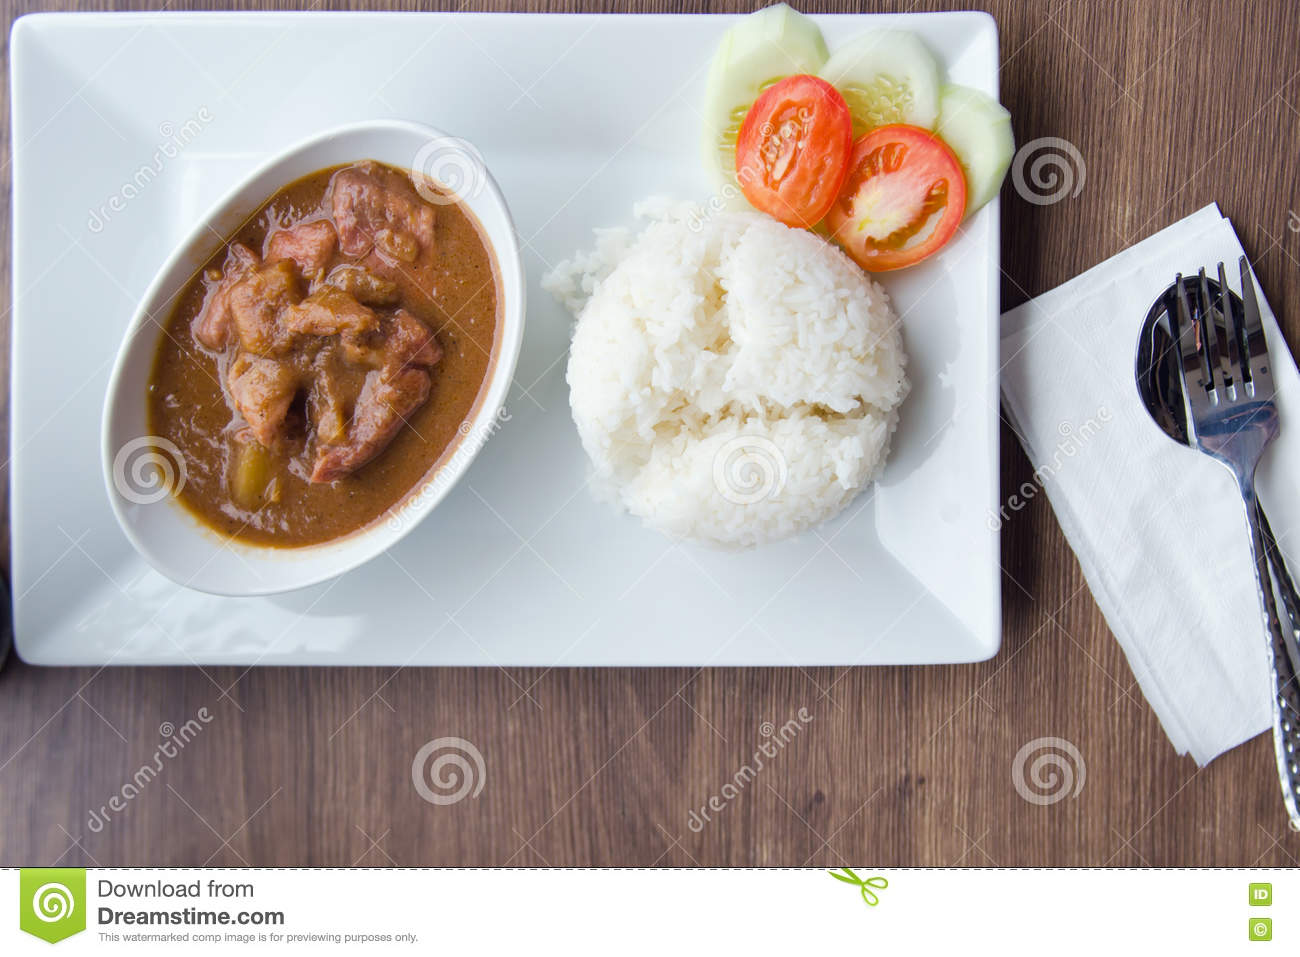 Baked Pork With Pineapple Served With Rice And Decorated